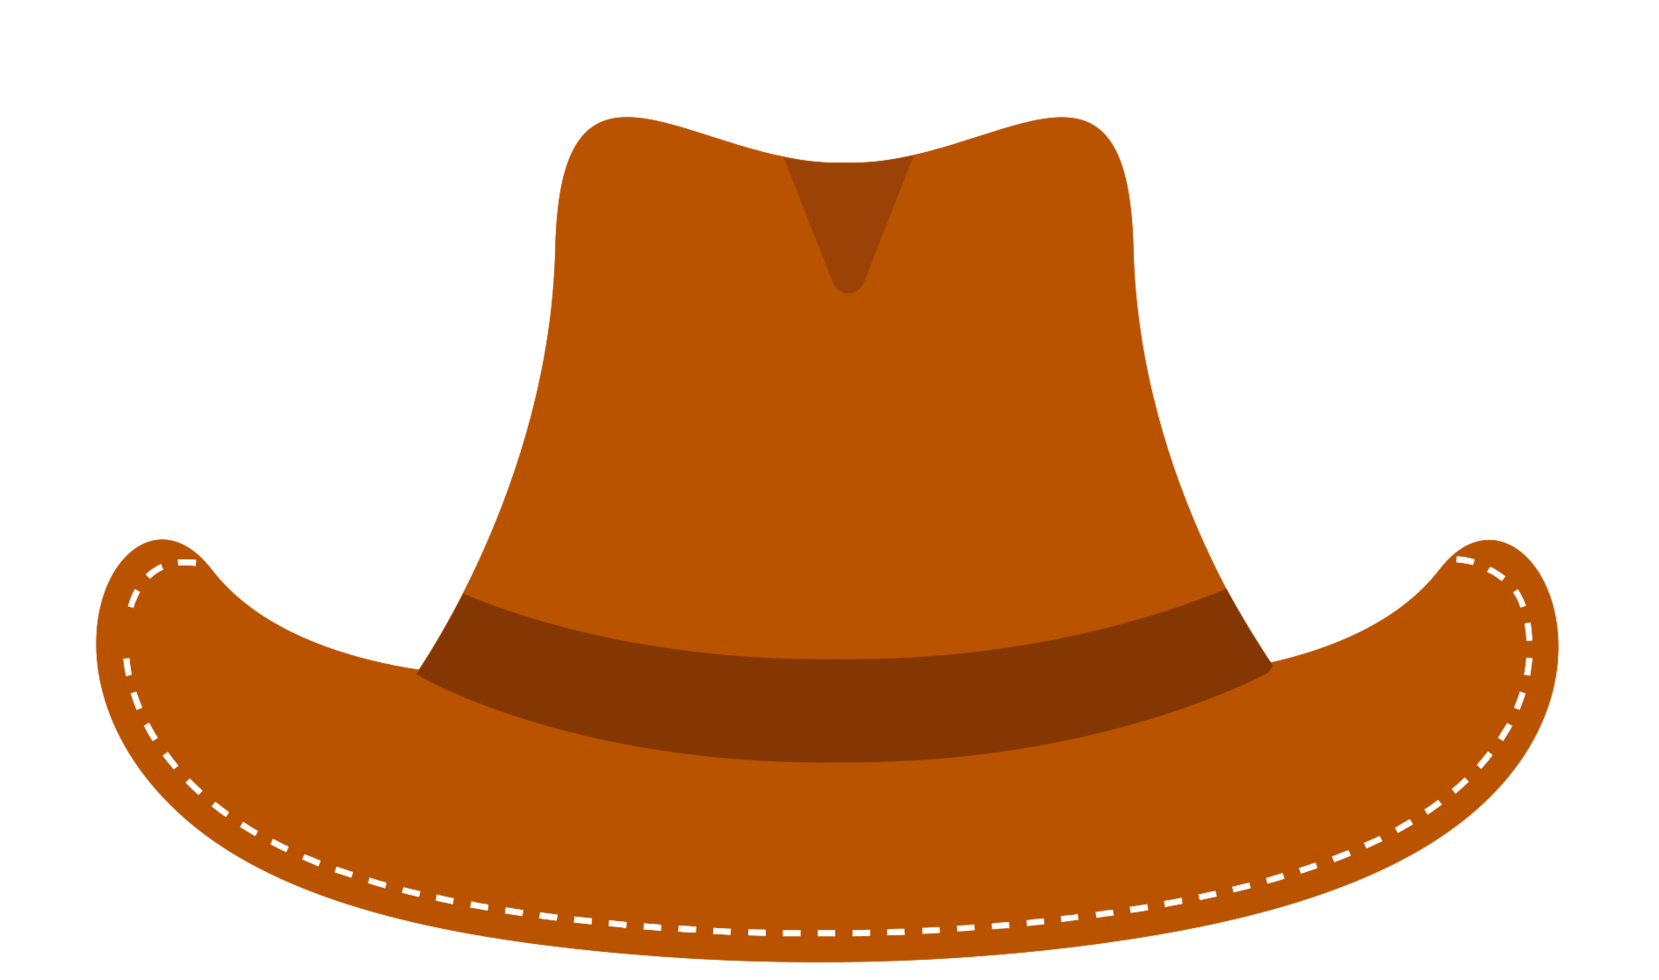 Free Cowboy Hat Png With Transparent Background All images and logos are crafted with great workmanship. cowboy hat png with transparent background